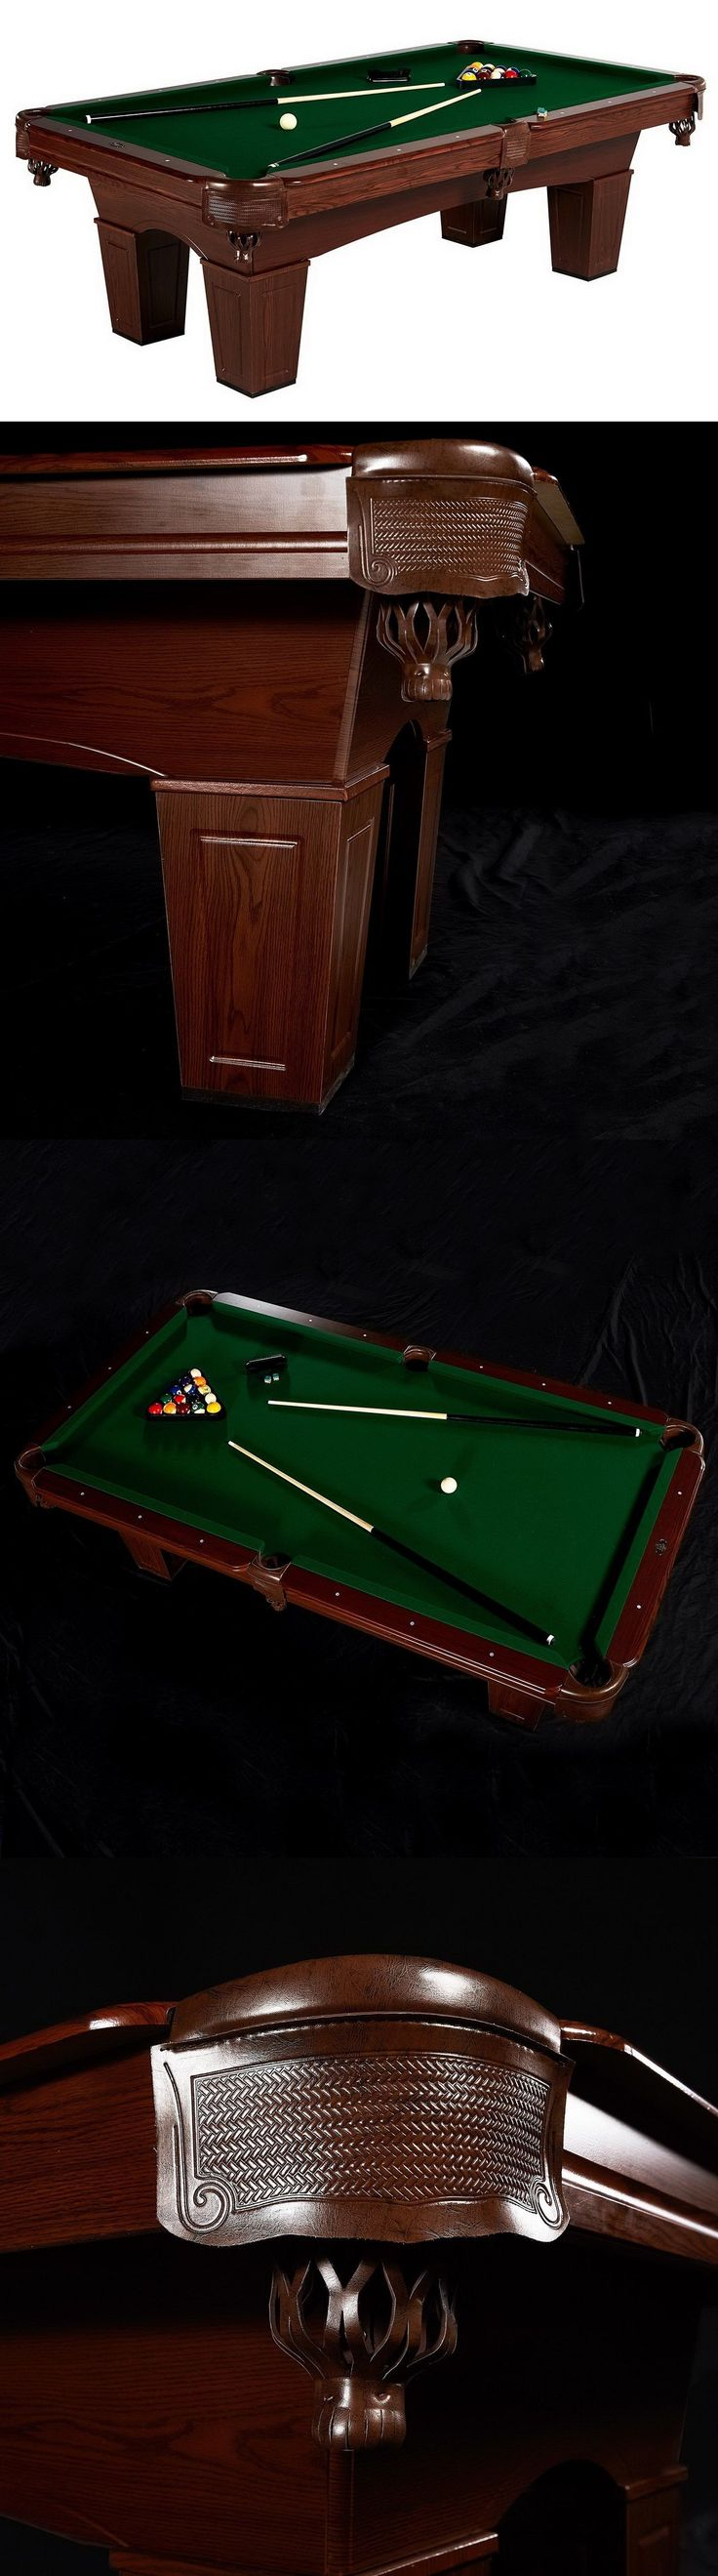 Tables 21213: New 8 Ft Billiard Table Family Game Room Pool Table 8 -> BUY IT NOW ONLY: $934.99 on eBay!